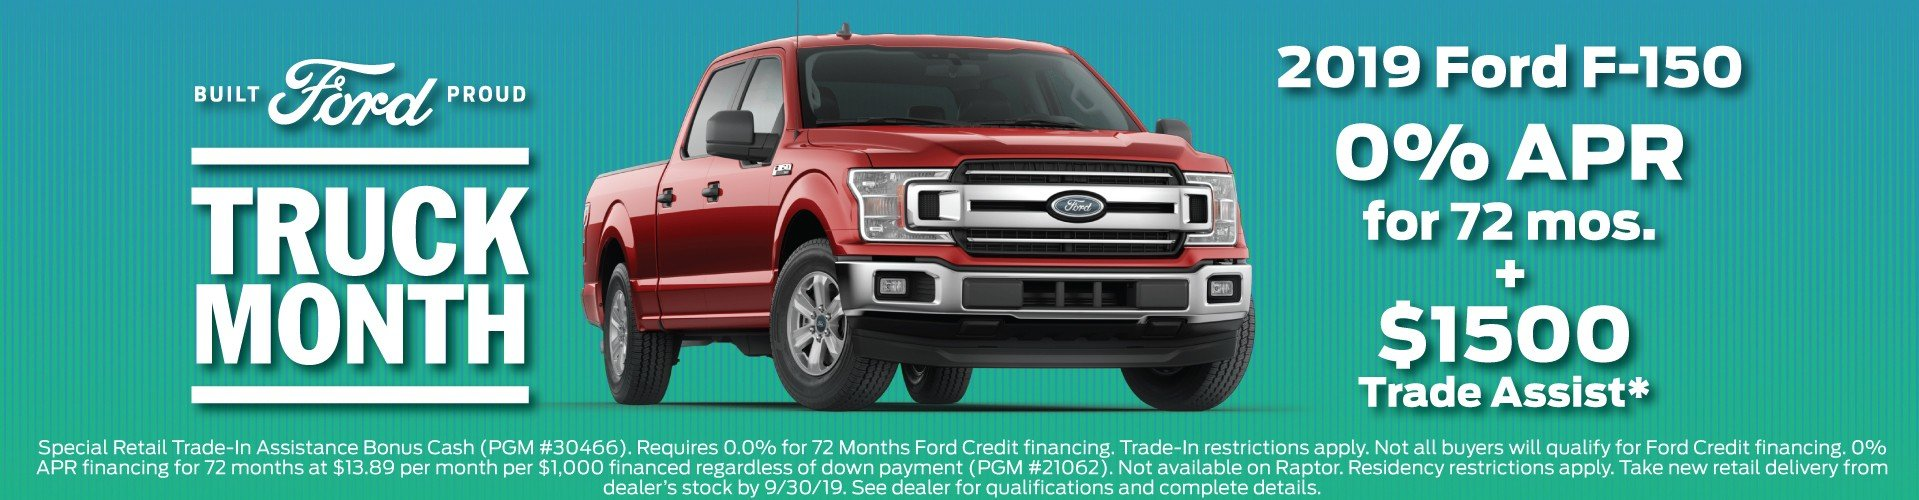 2019 Ford F150 Offer 9-30-2019